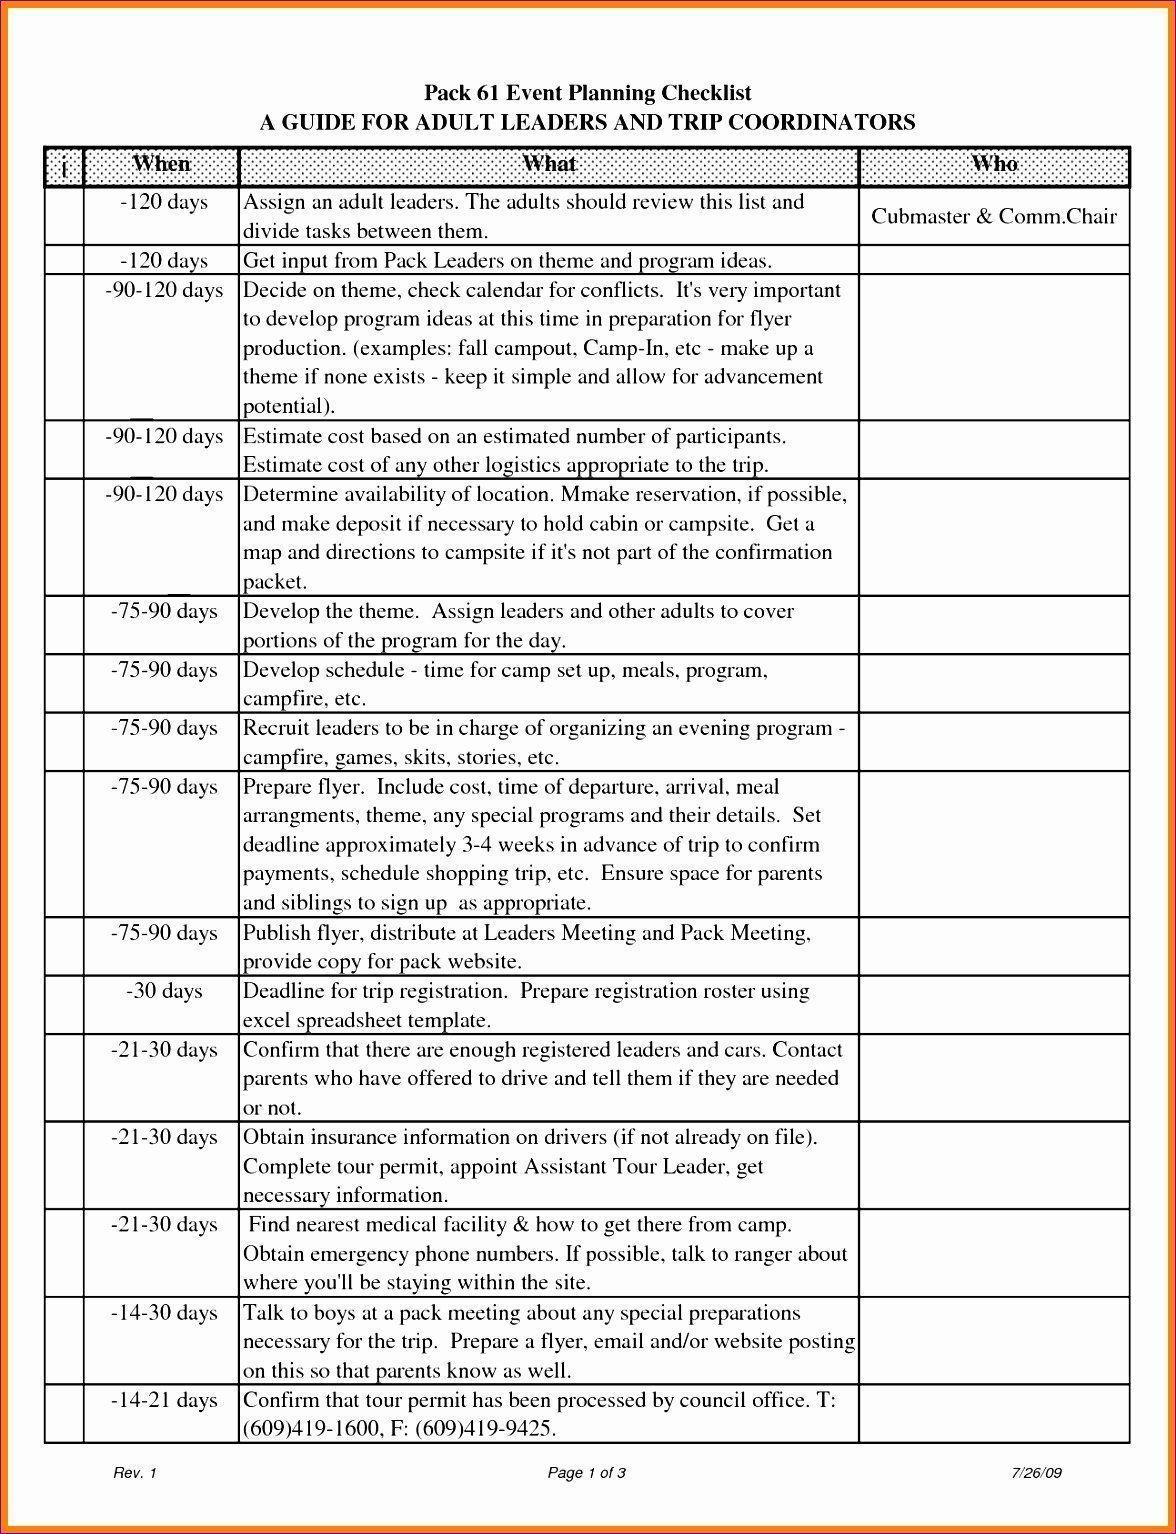 Excel Event Planning Template Inspirational 10 Event Timeline Template Excel Event Planning Checklist Templates Event Planning Quotes Event Planning Worksheet Event planning checklist template excel